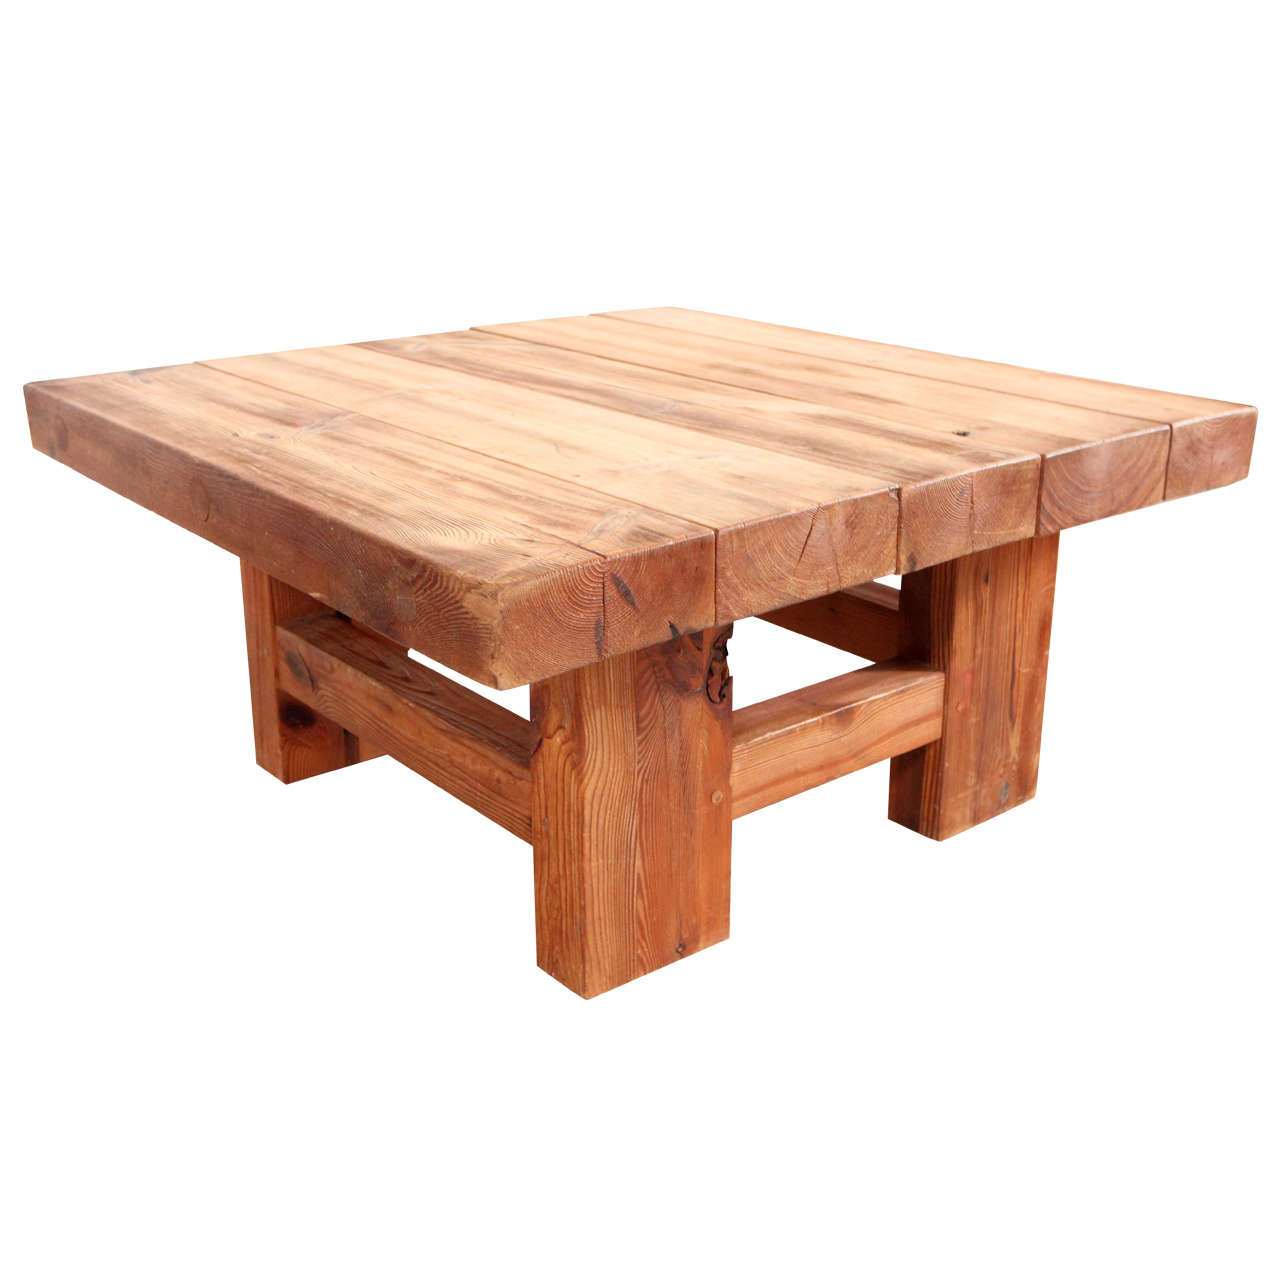 Rustic wood block square coffee table at stdibs